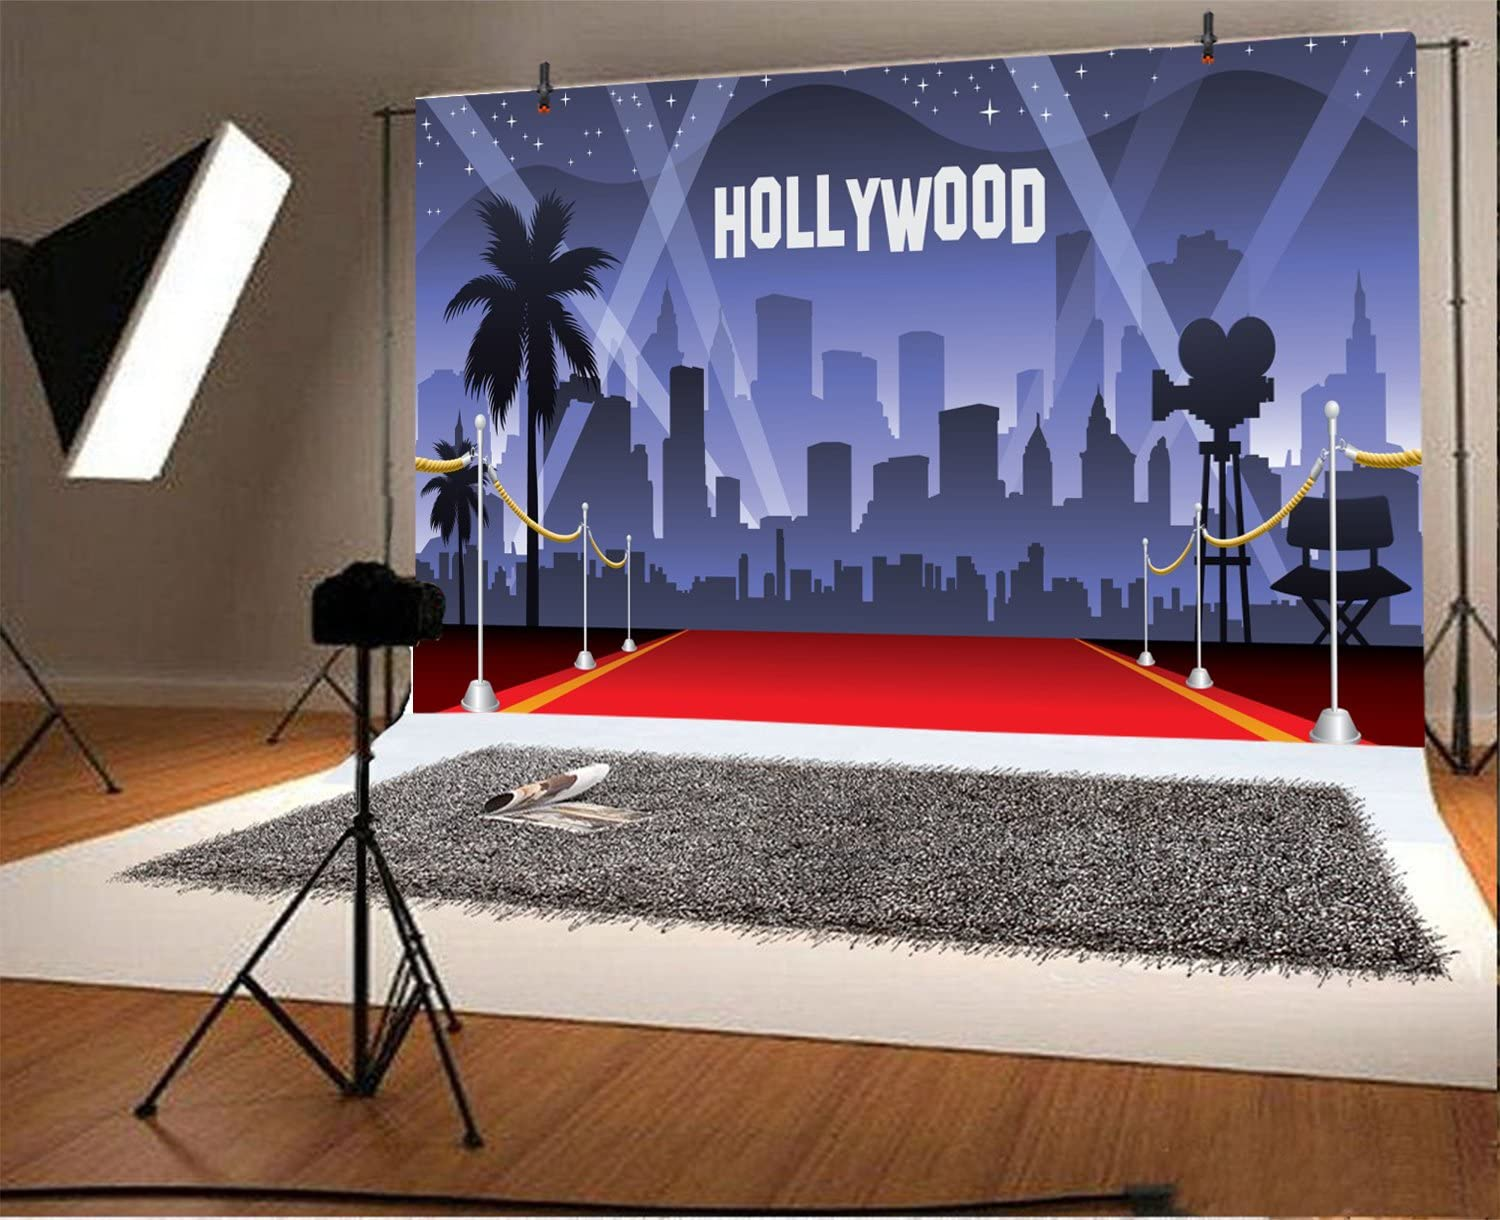 Leowefowa 10x8ft Hollywood Backdrop for Birthday Party Oscar Night of Film Hollywood Award Ceremony Red Carpet Vinyl Photography Background Children Baby Bday Banner 18th 21th Bday Photo Booth Props